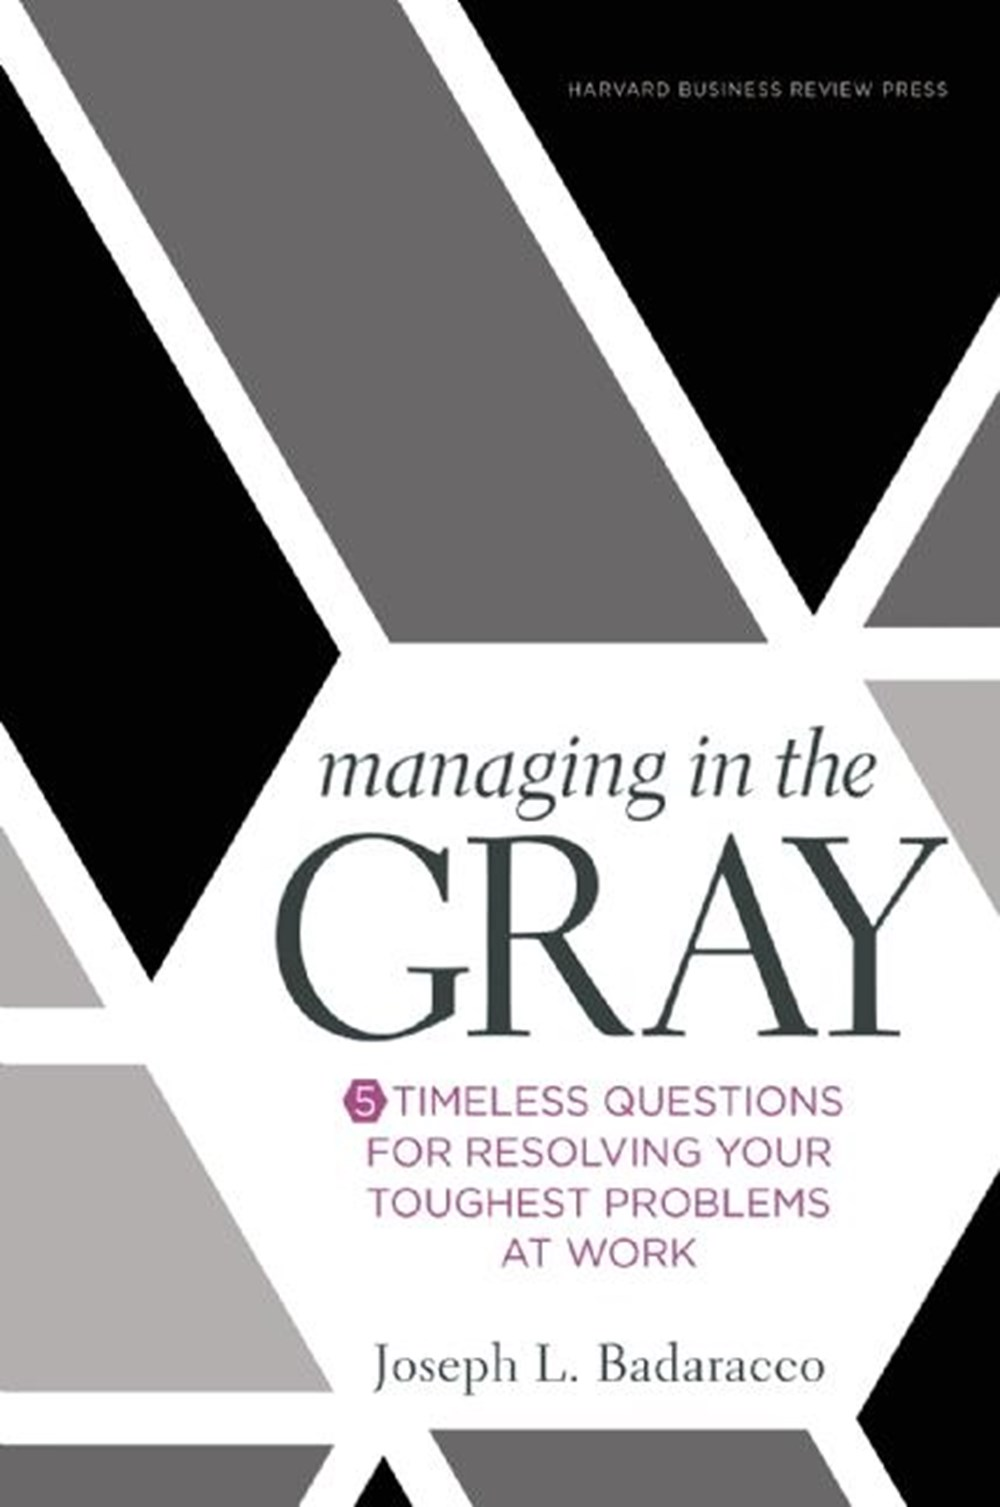 Managing in the Gray Five Timeless Questions for Resolving Your Toughest Problems at Work